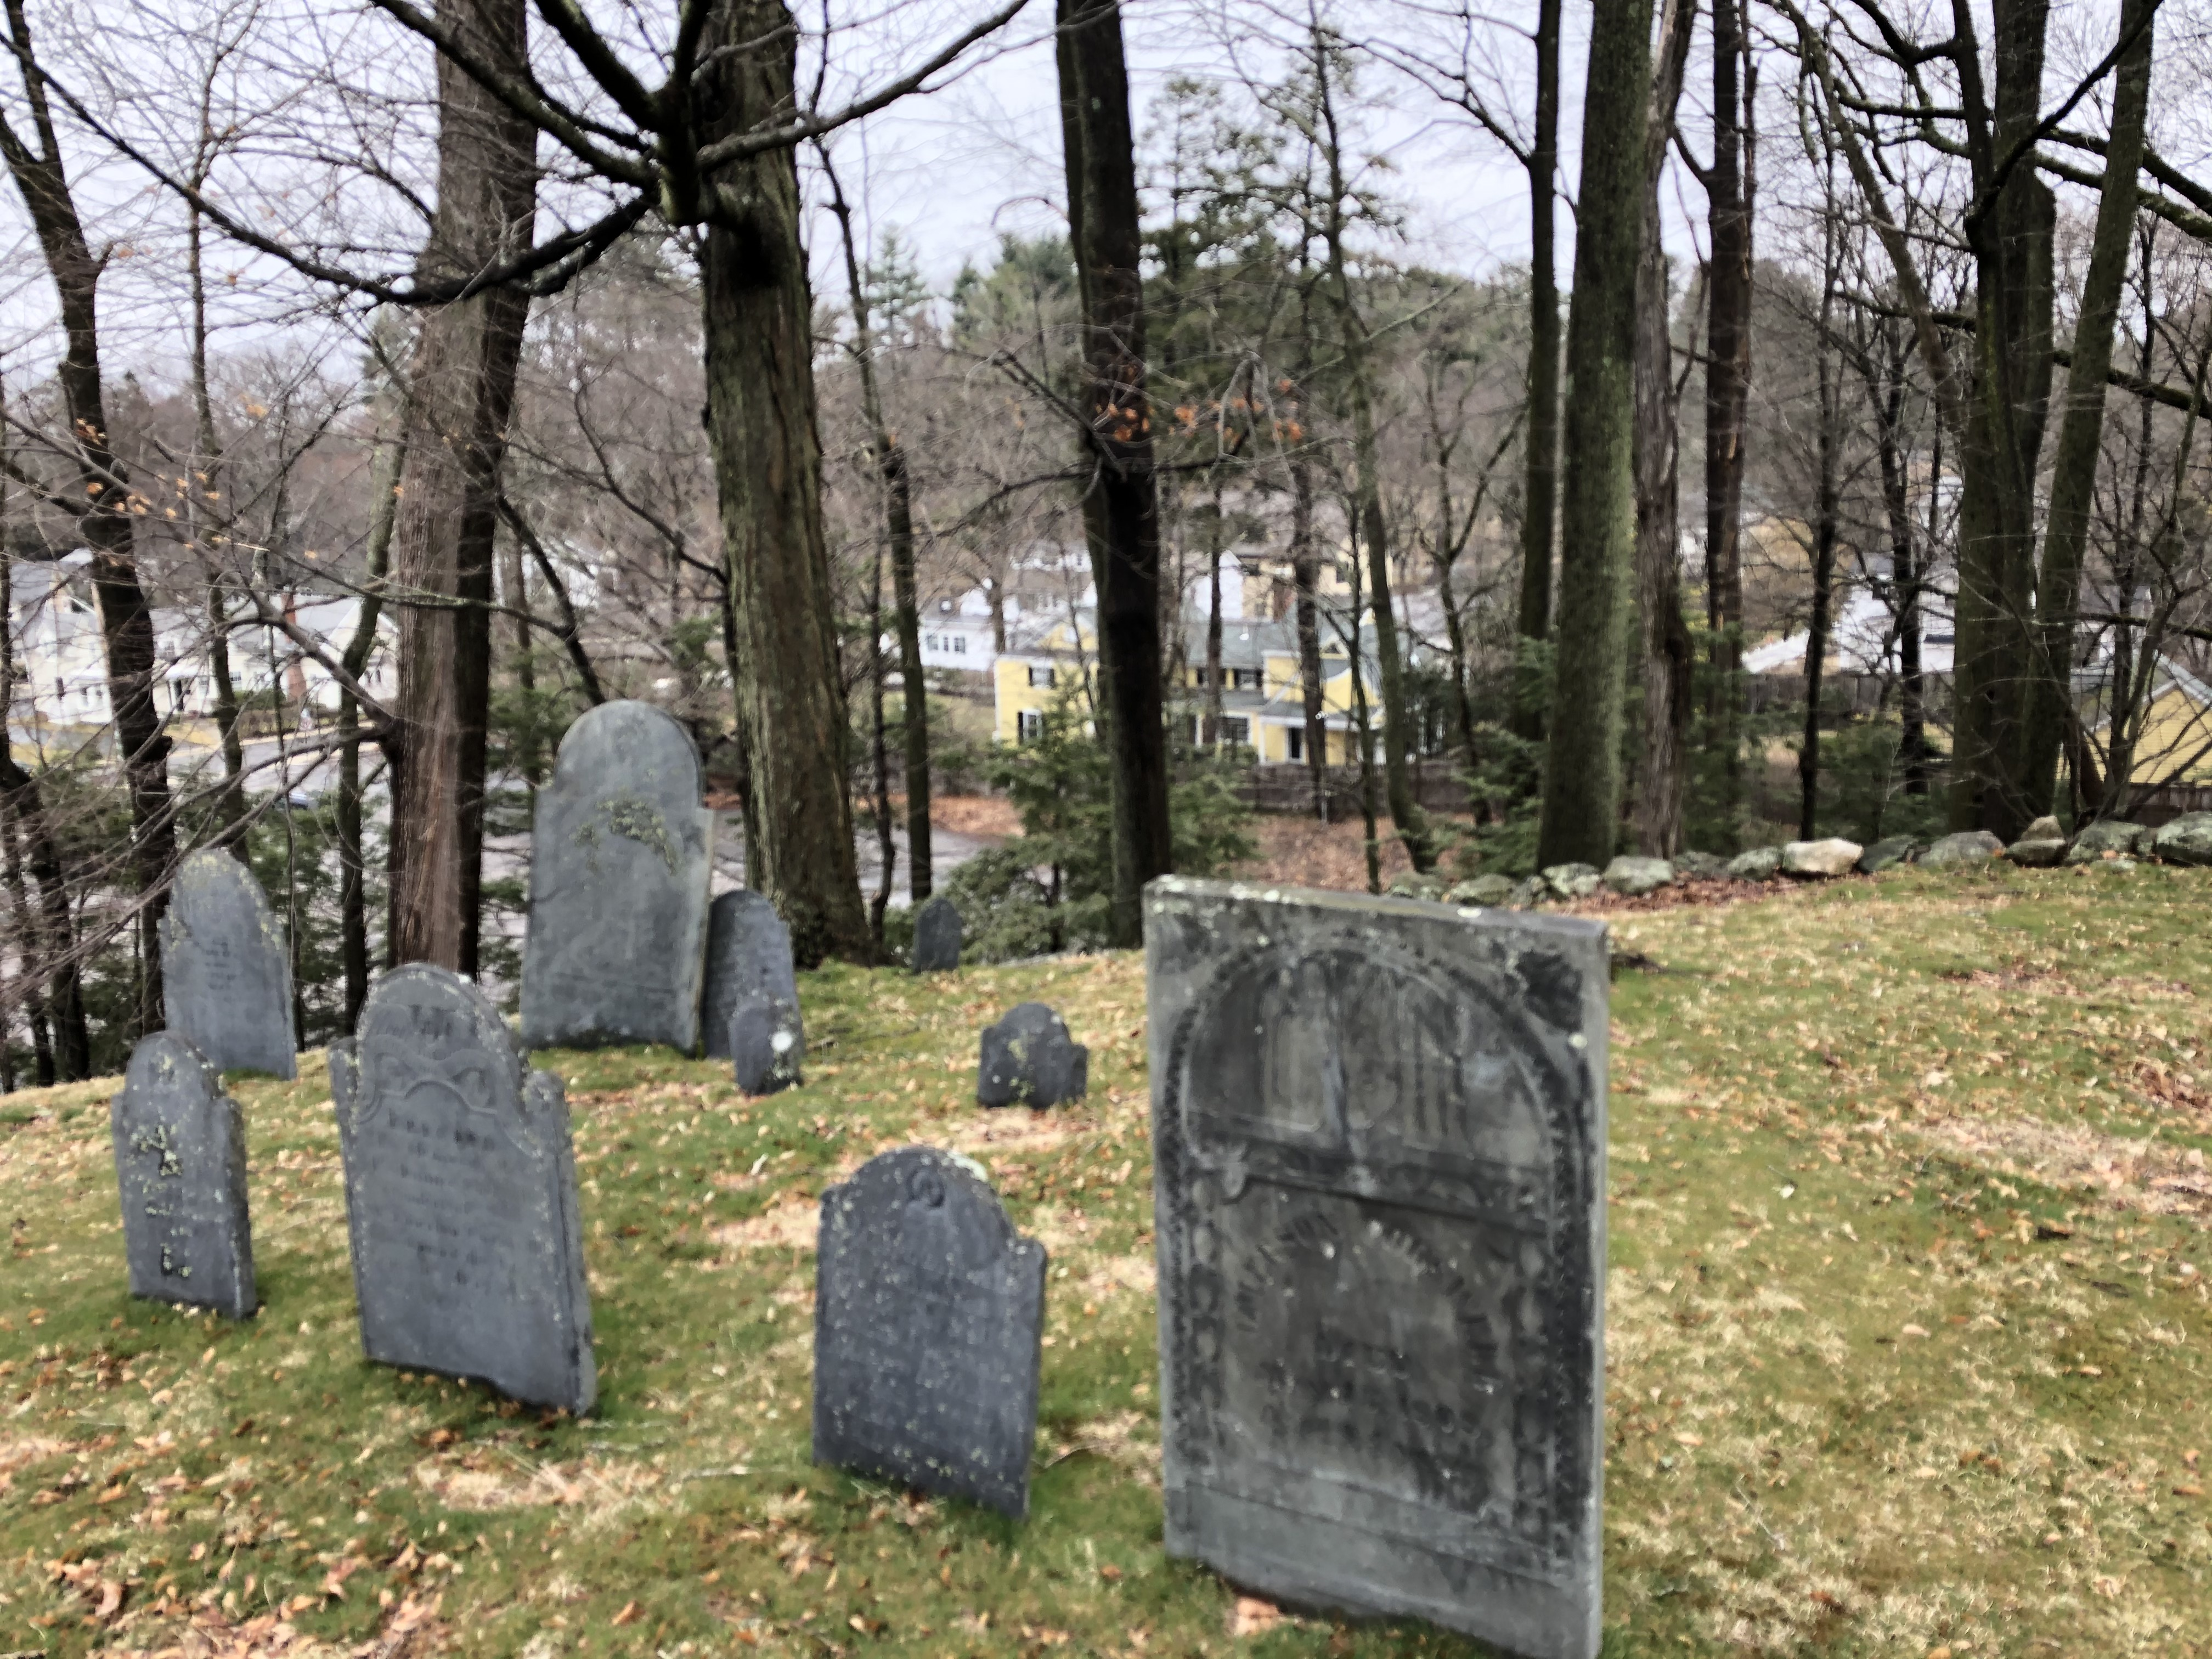 032020-old-graveyard-on-hill